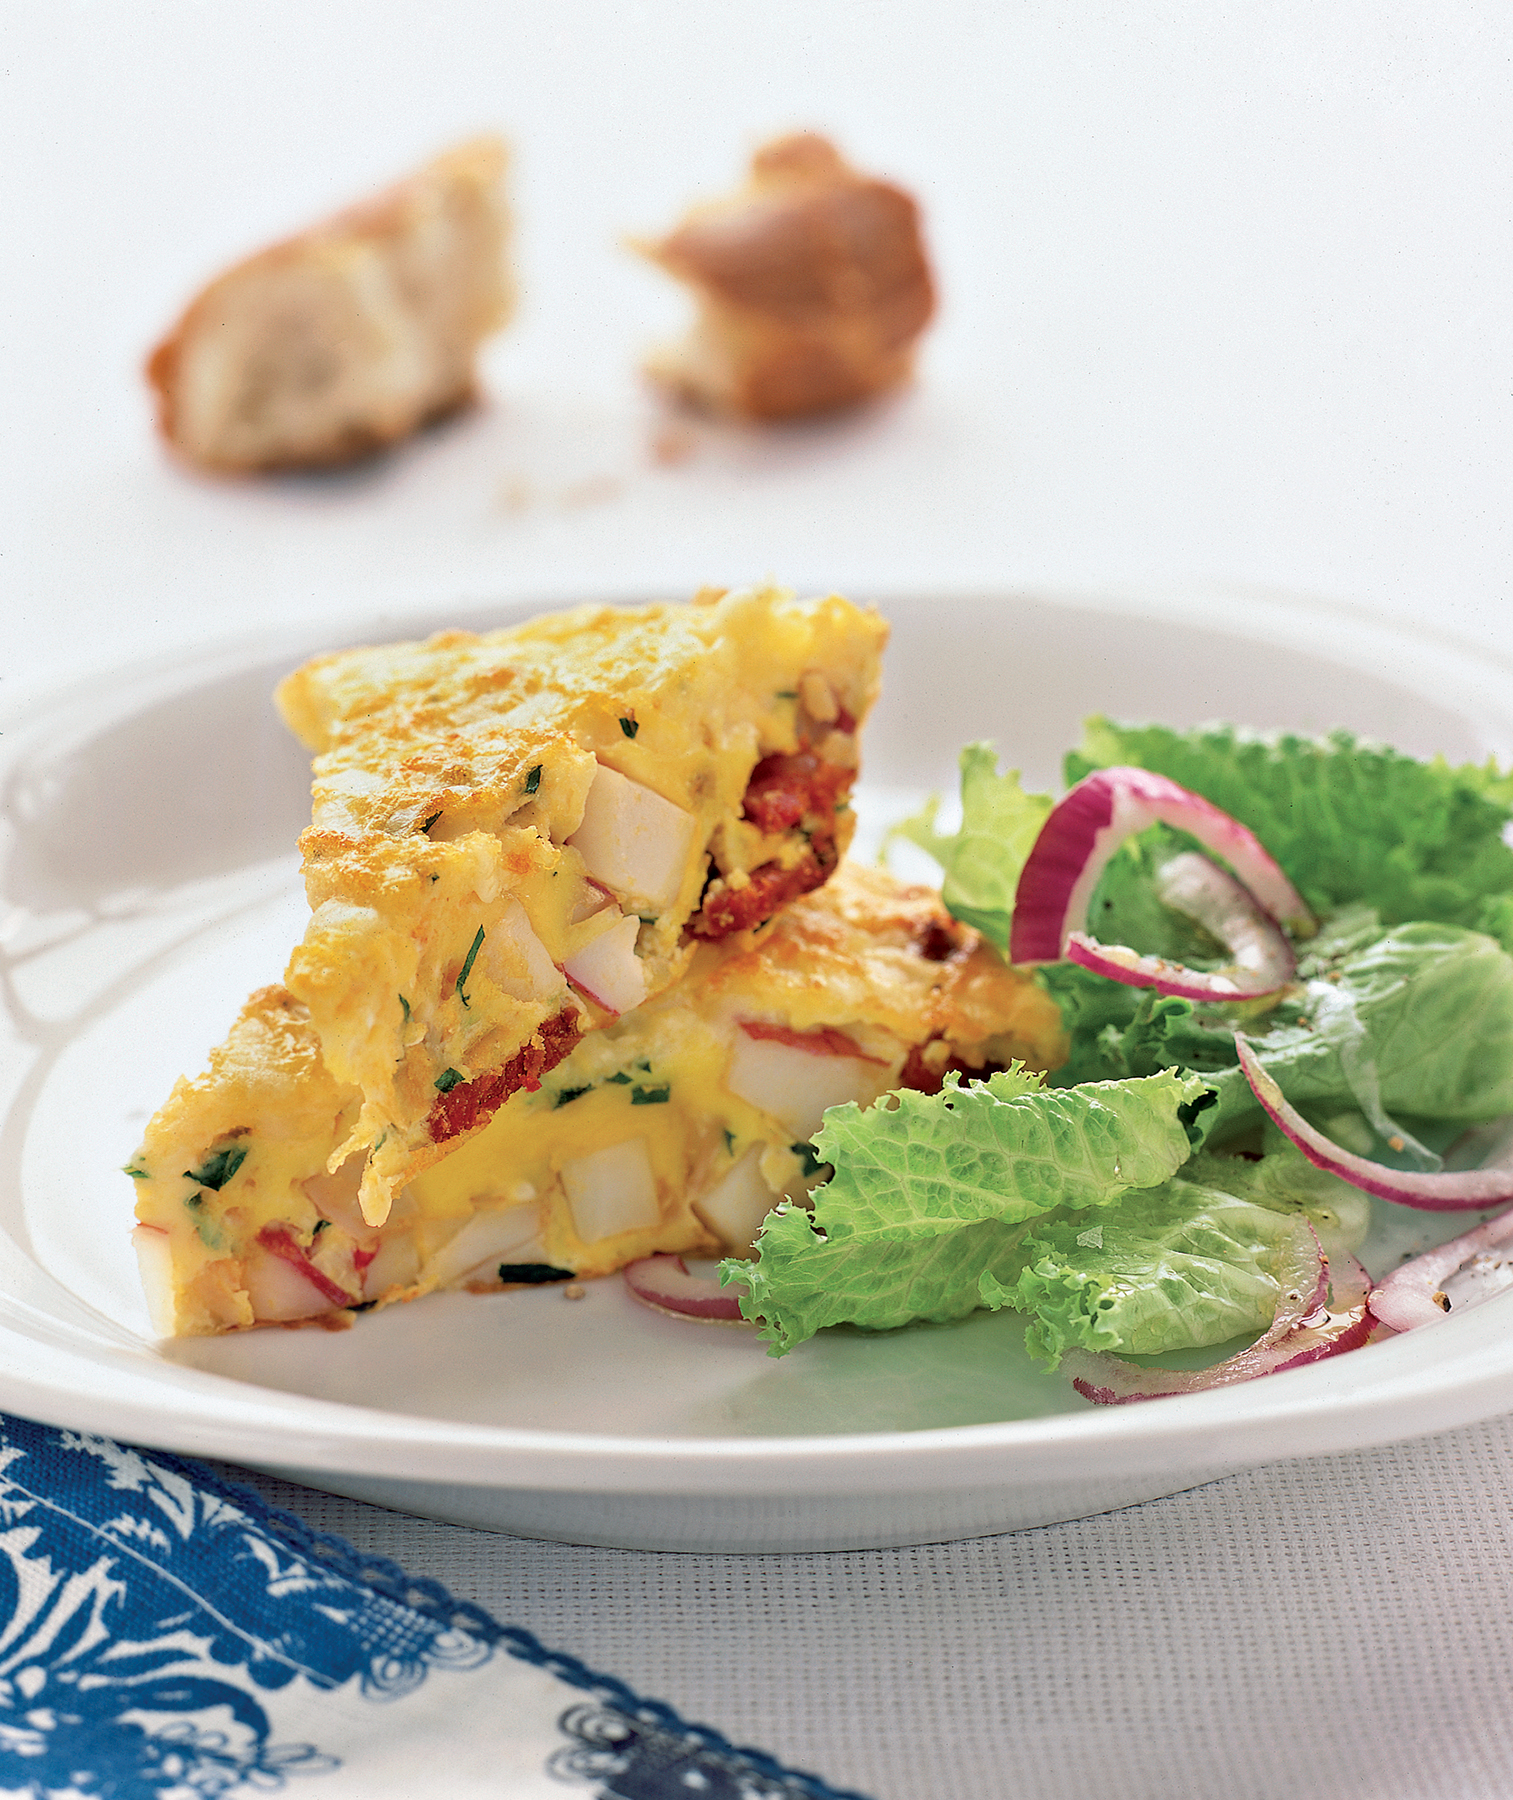 Spanish Omelet With Potatoes and Chorizo & 20 Fast Dinner Recipes - Real Simple